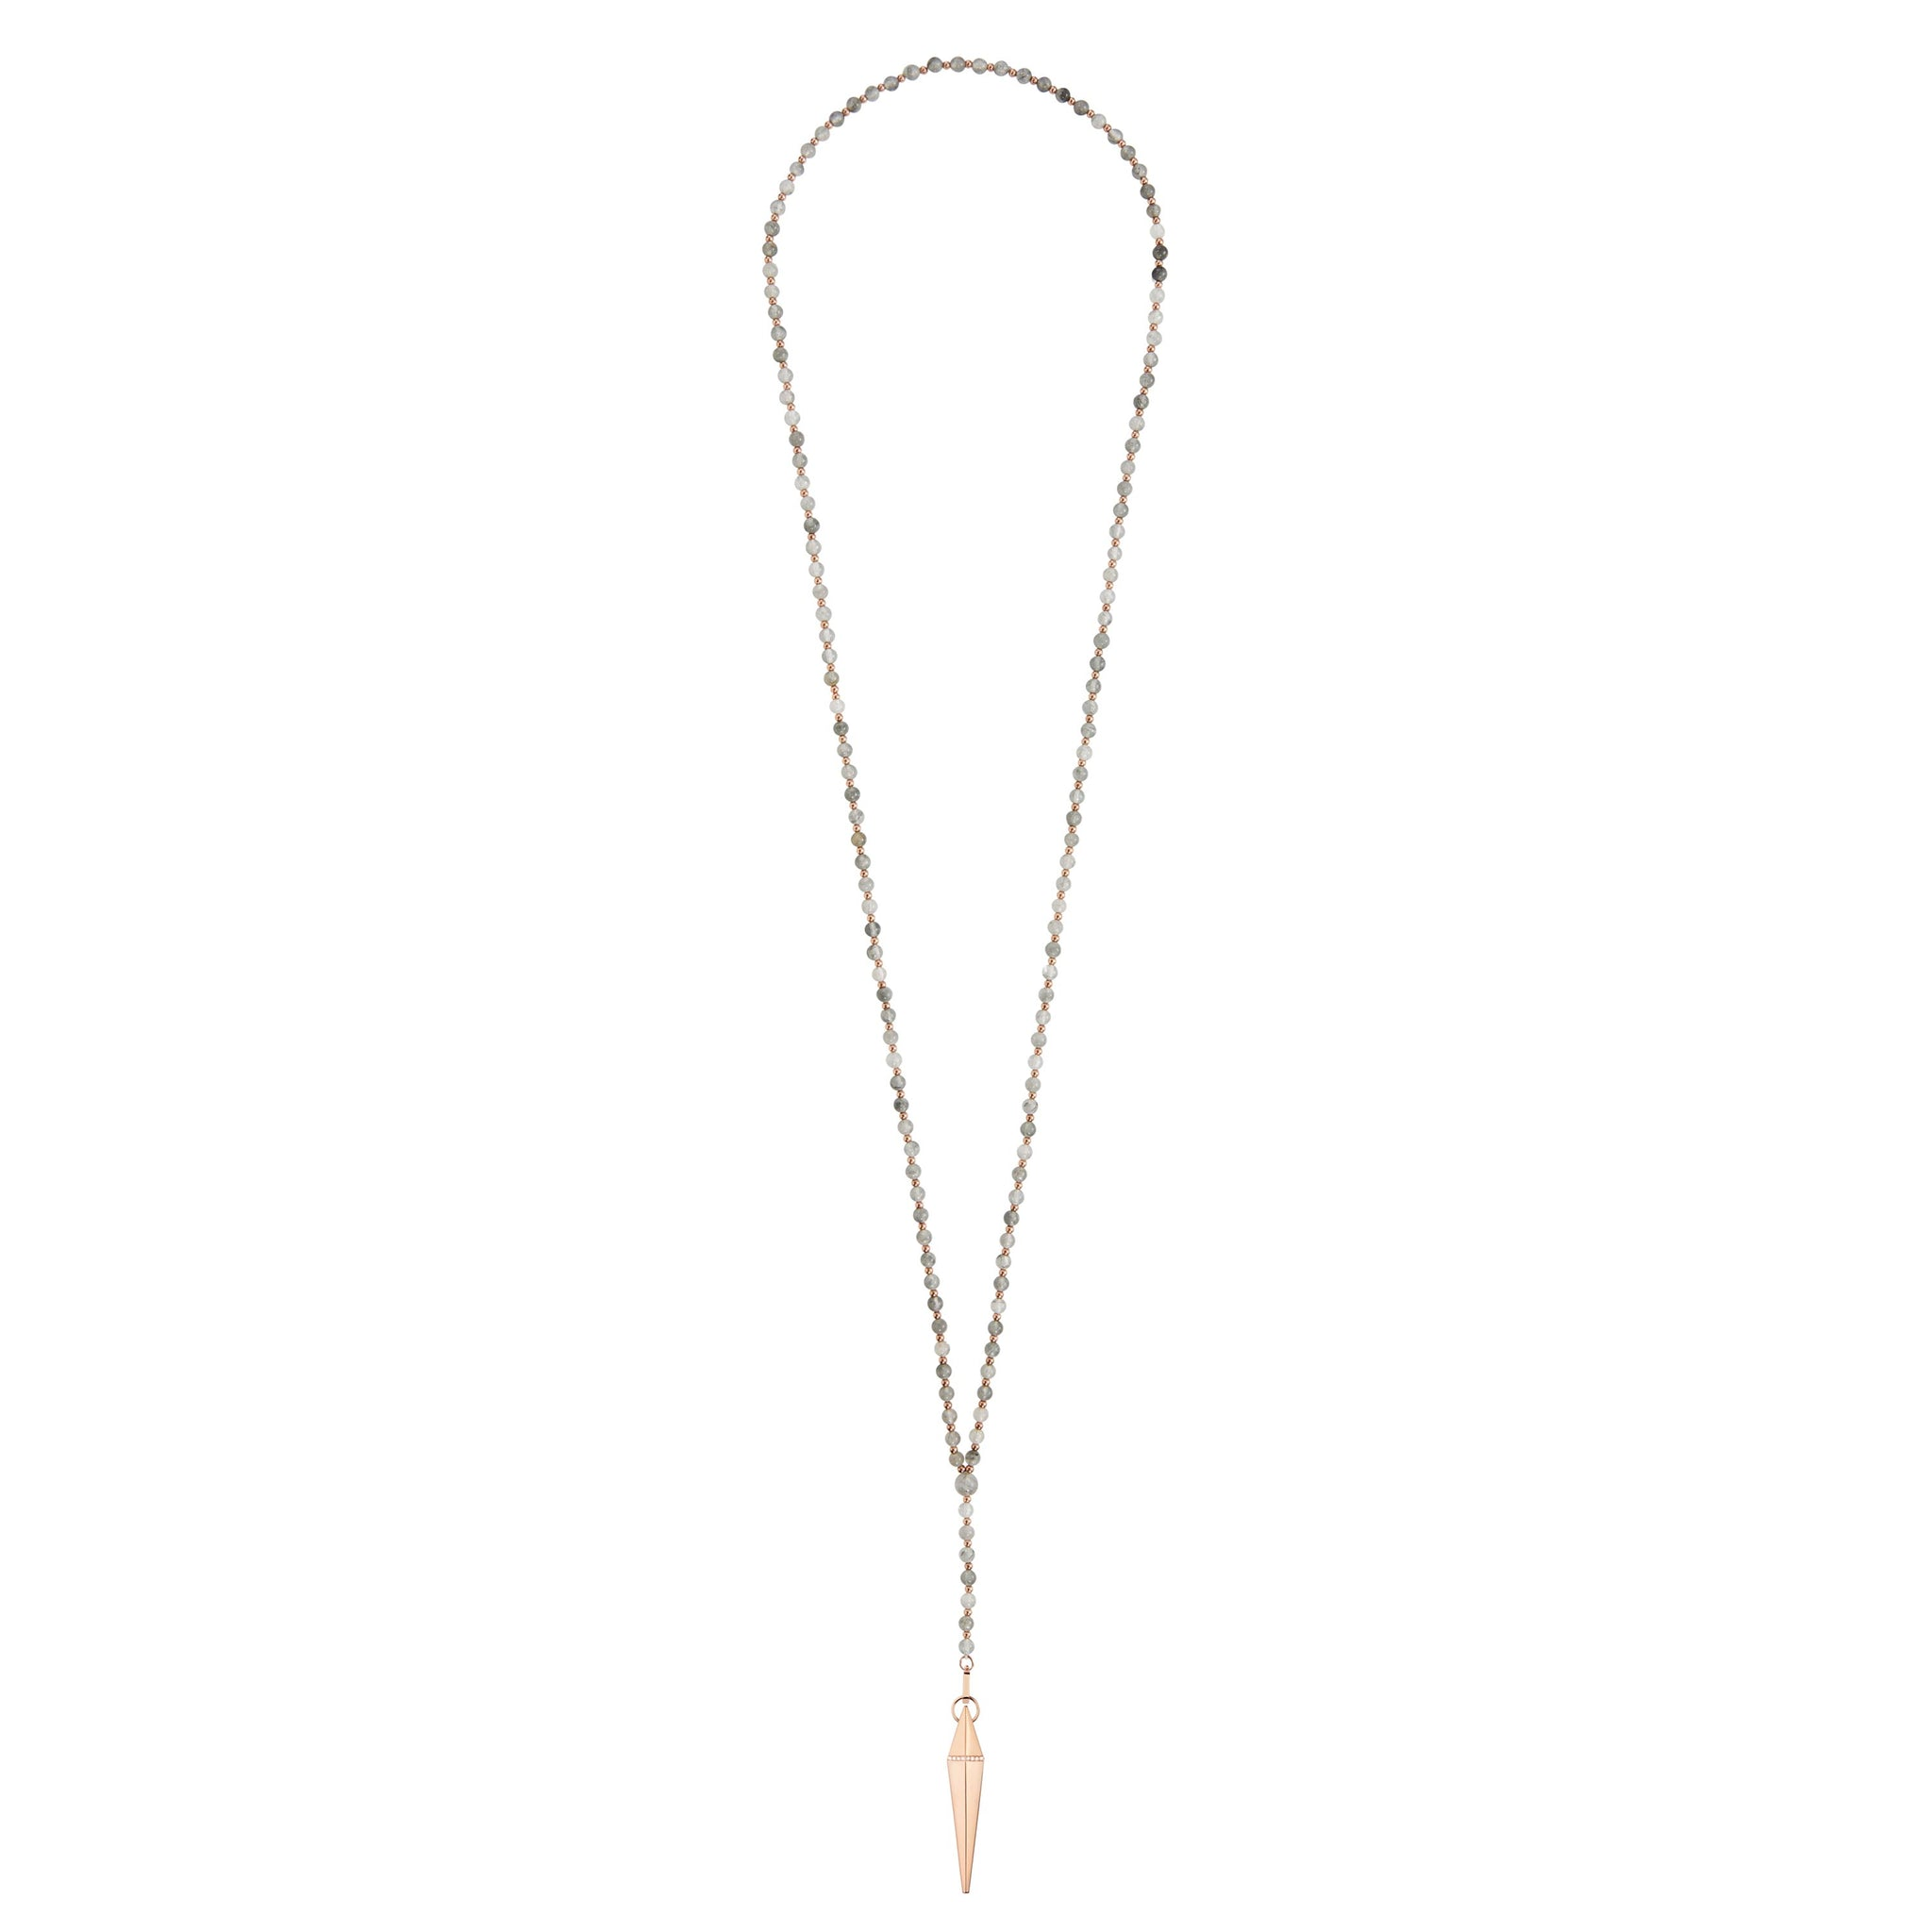 Diane Kordas Grey Quartz Spear Necklace